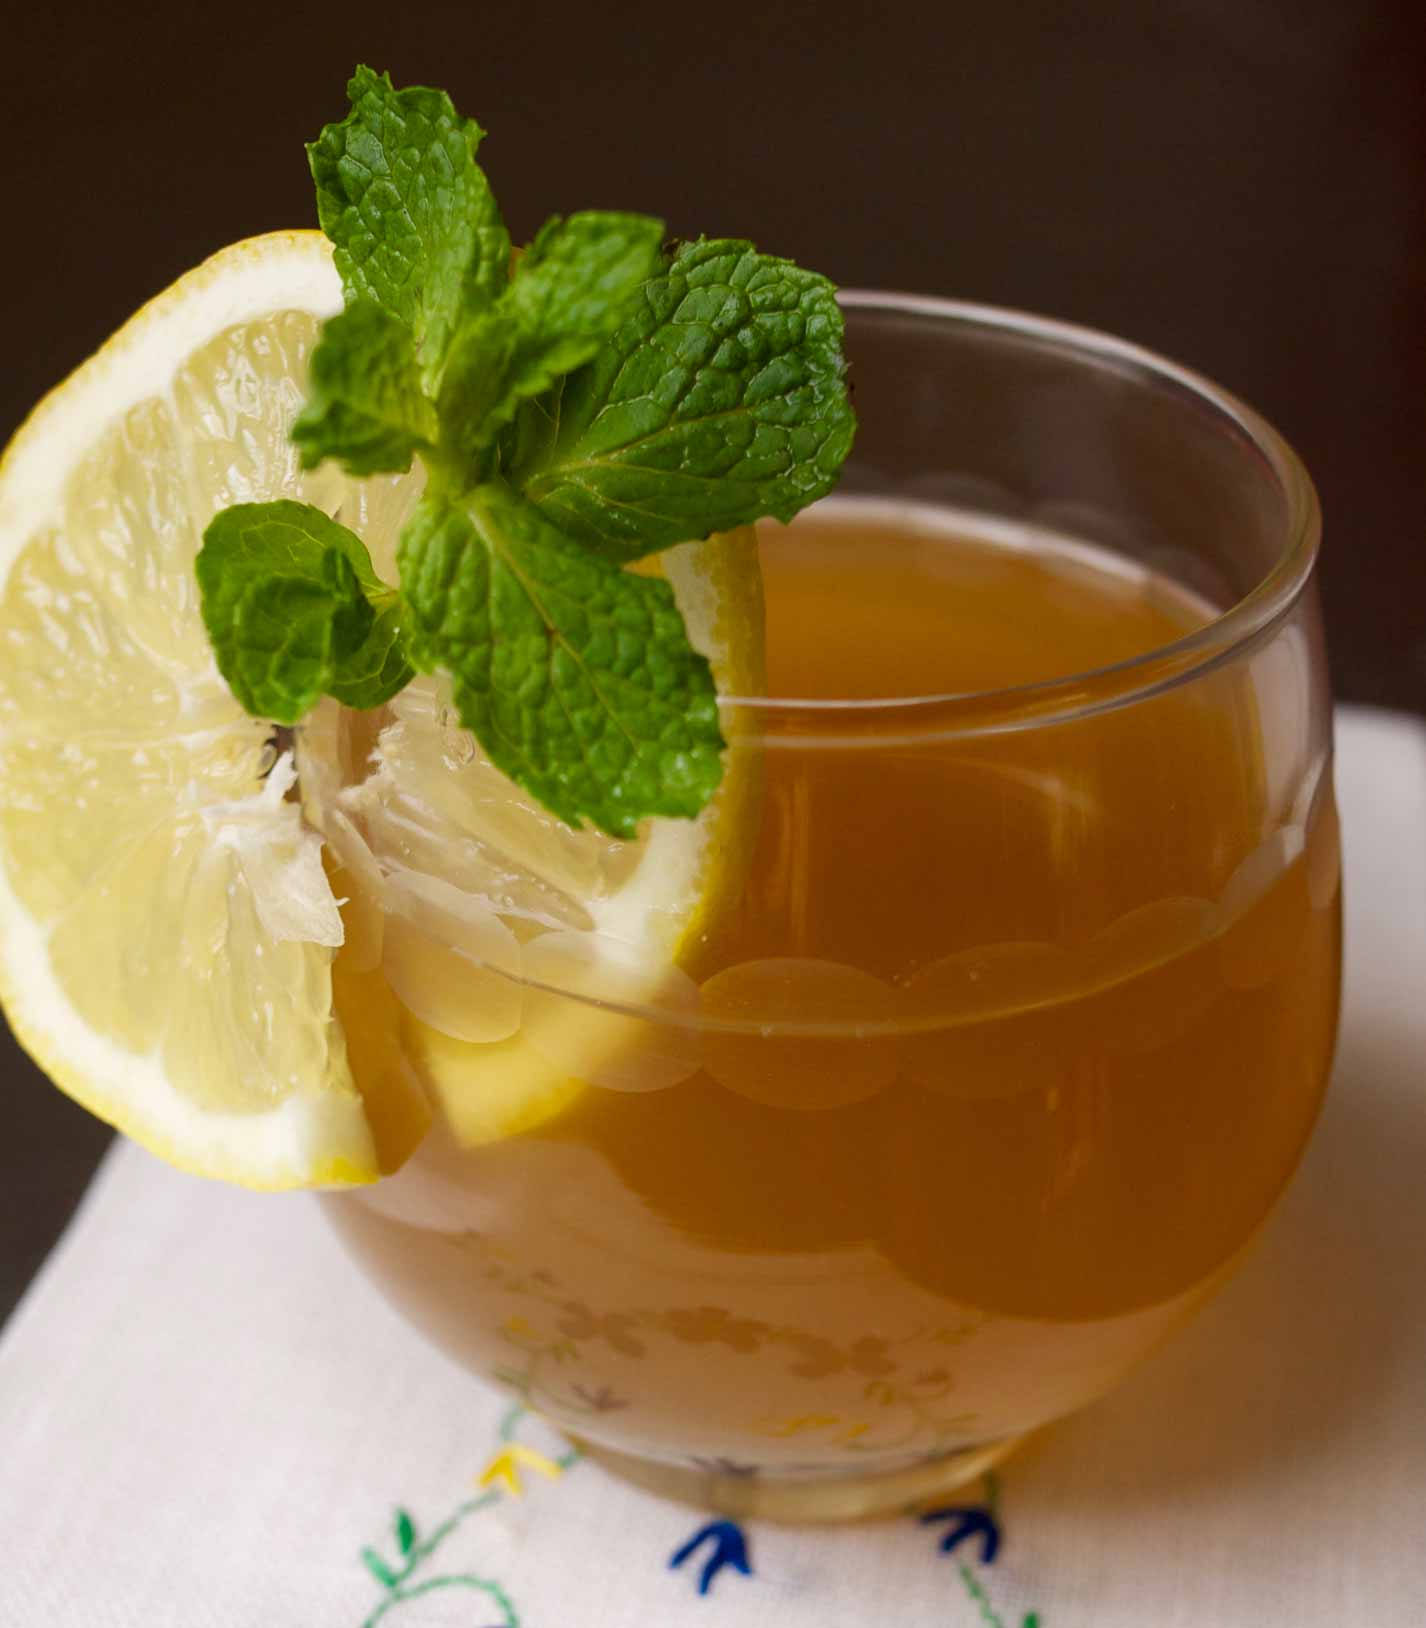 Spiced Mint Tea with Ginger and Lemon